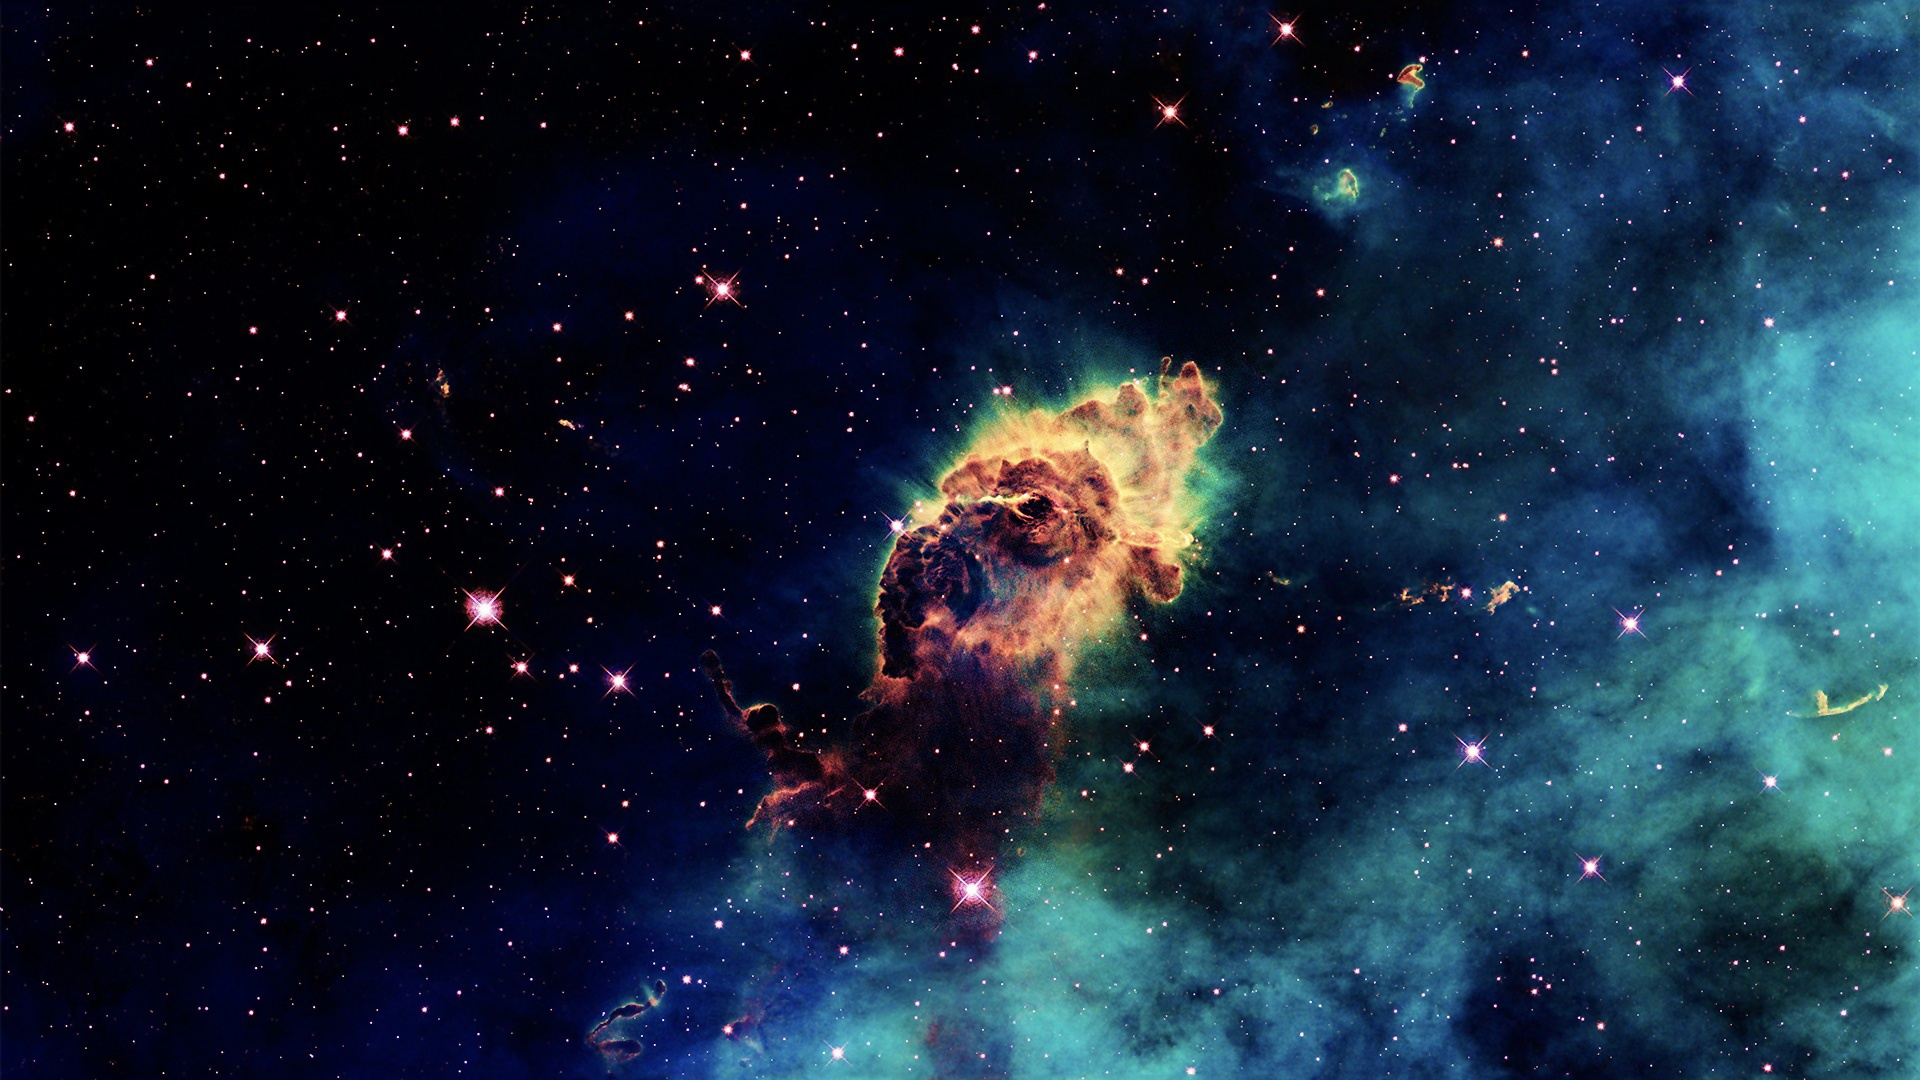 Nebula Wallpaper